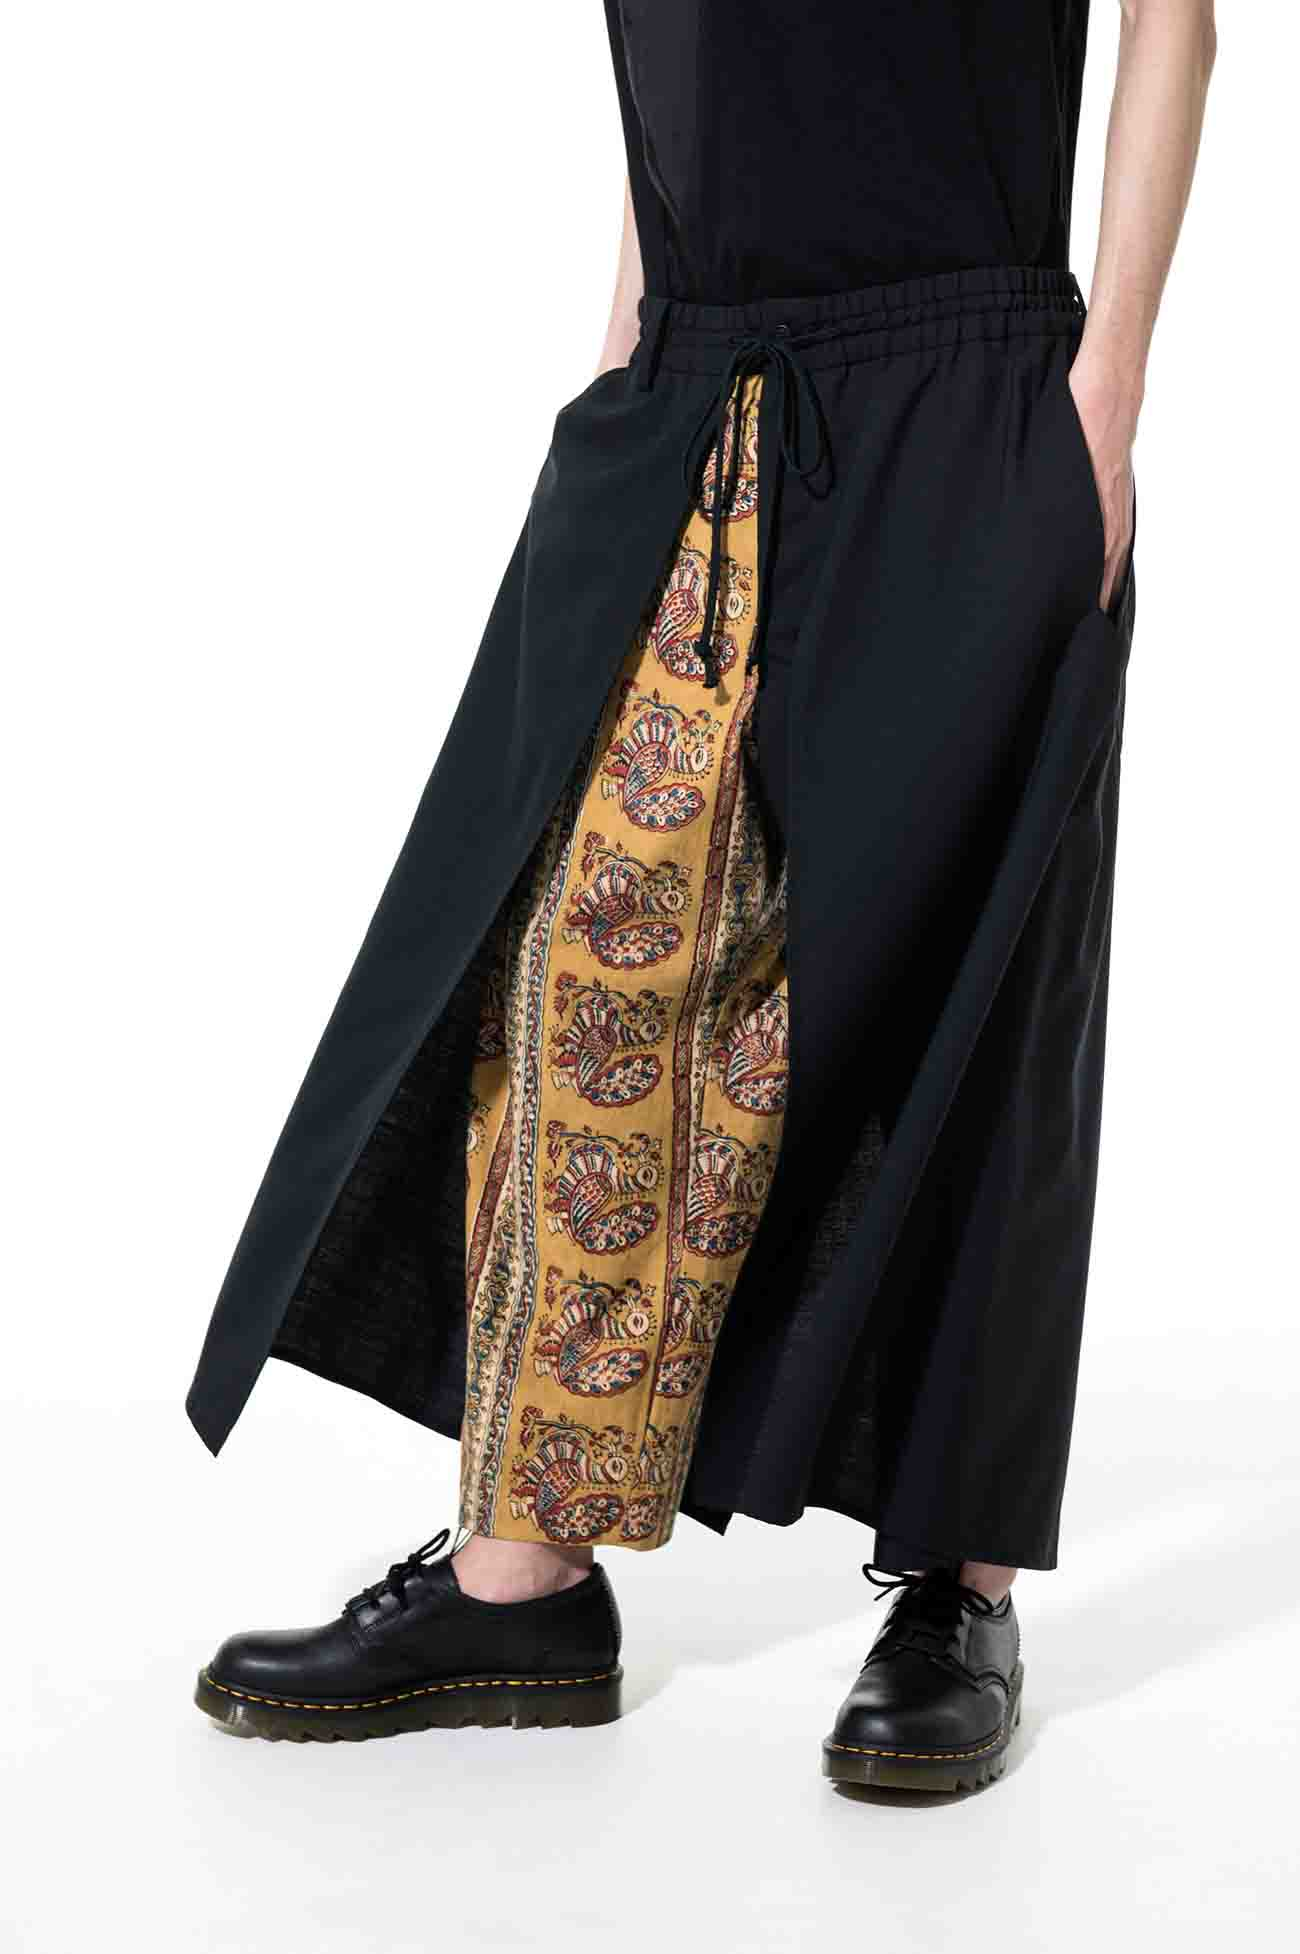 T/W Tropical Indian Block Print Peacock Layer Cover Pants